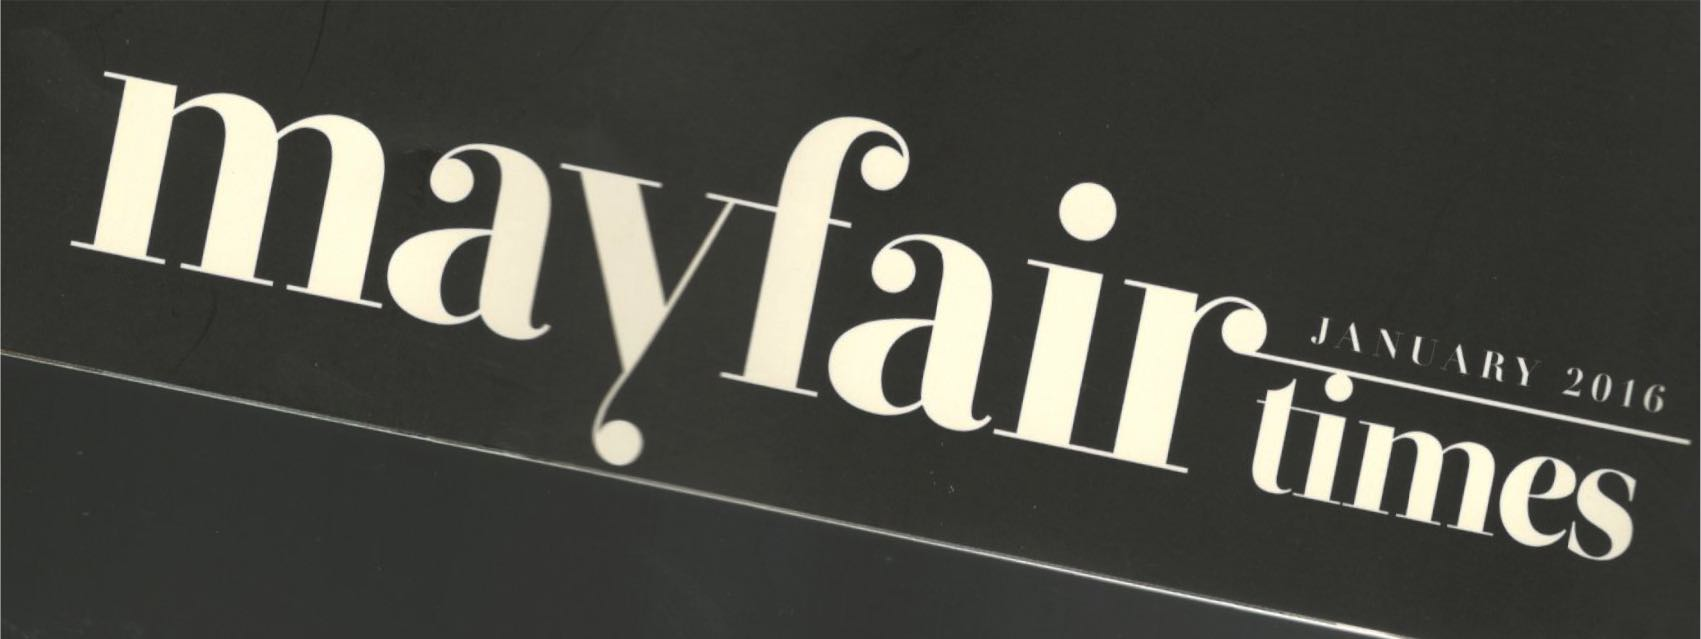 Mayfair Times, January 2016